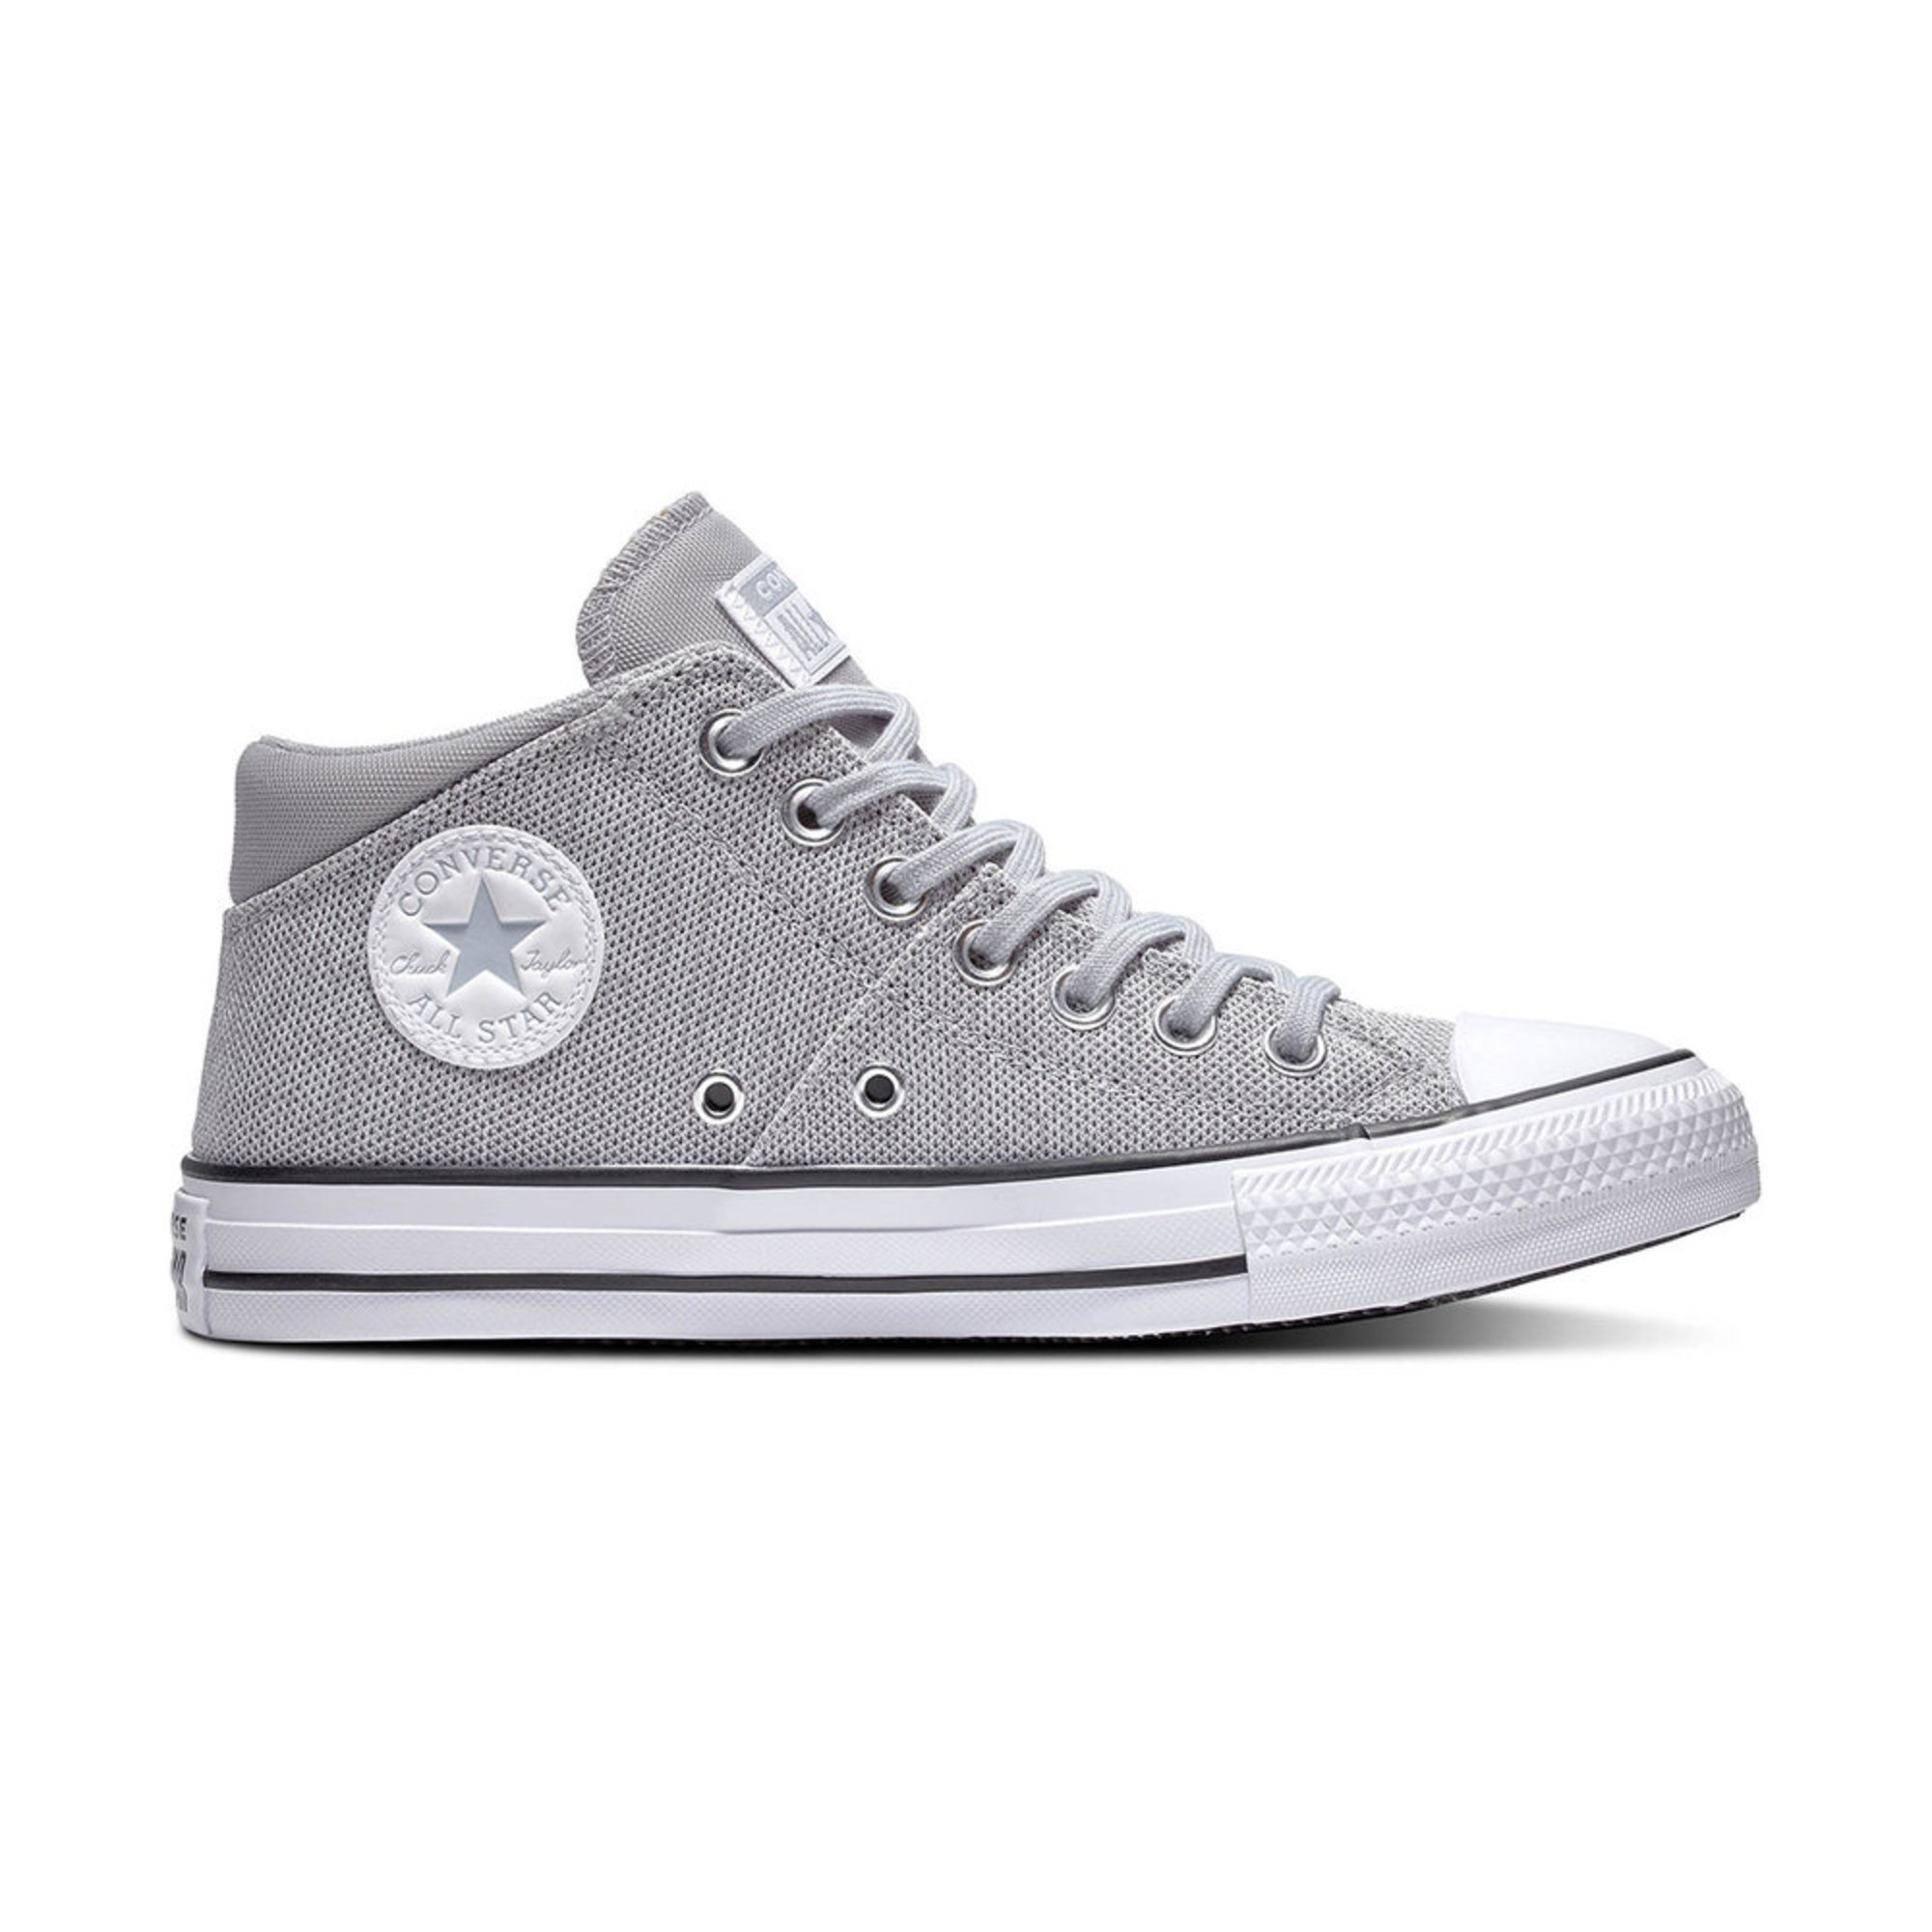 3fb8c675f18 Converse. Converse Women s Chuck Taylor All Star Madison Low Top Sneaker